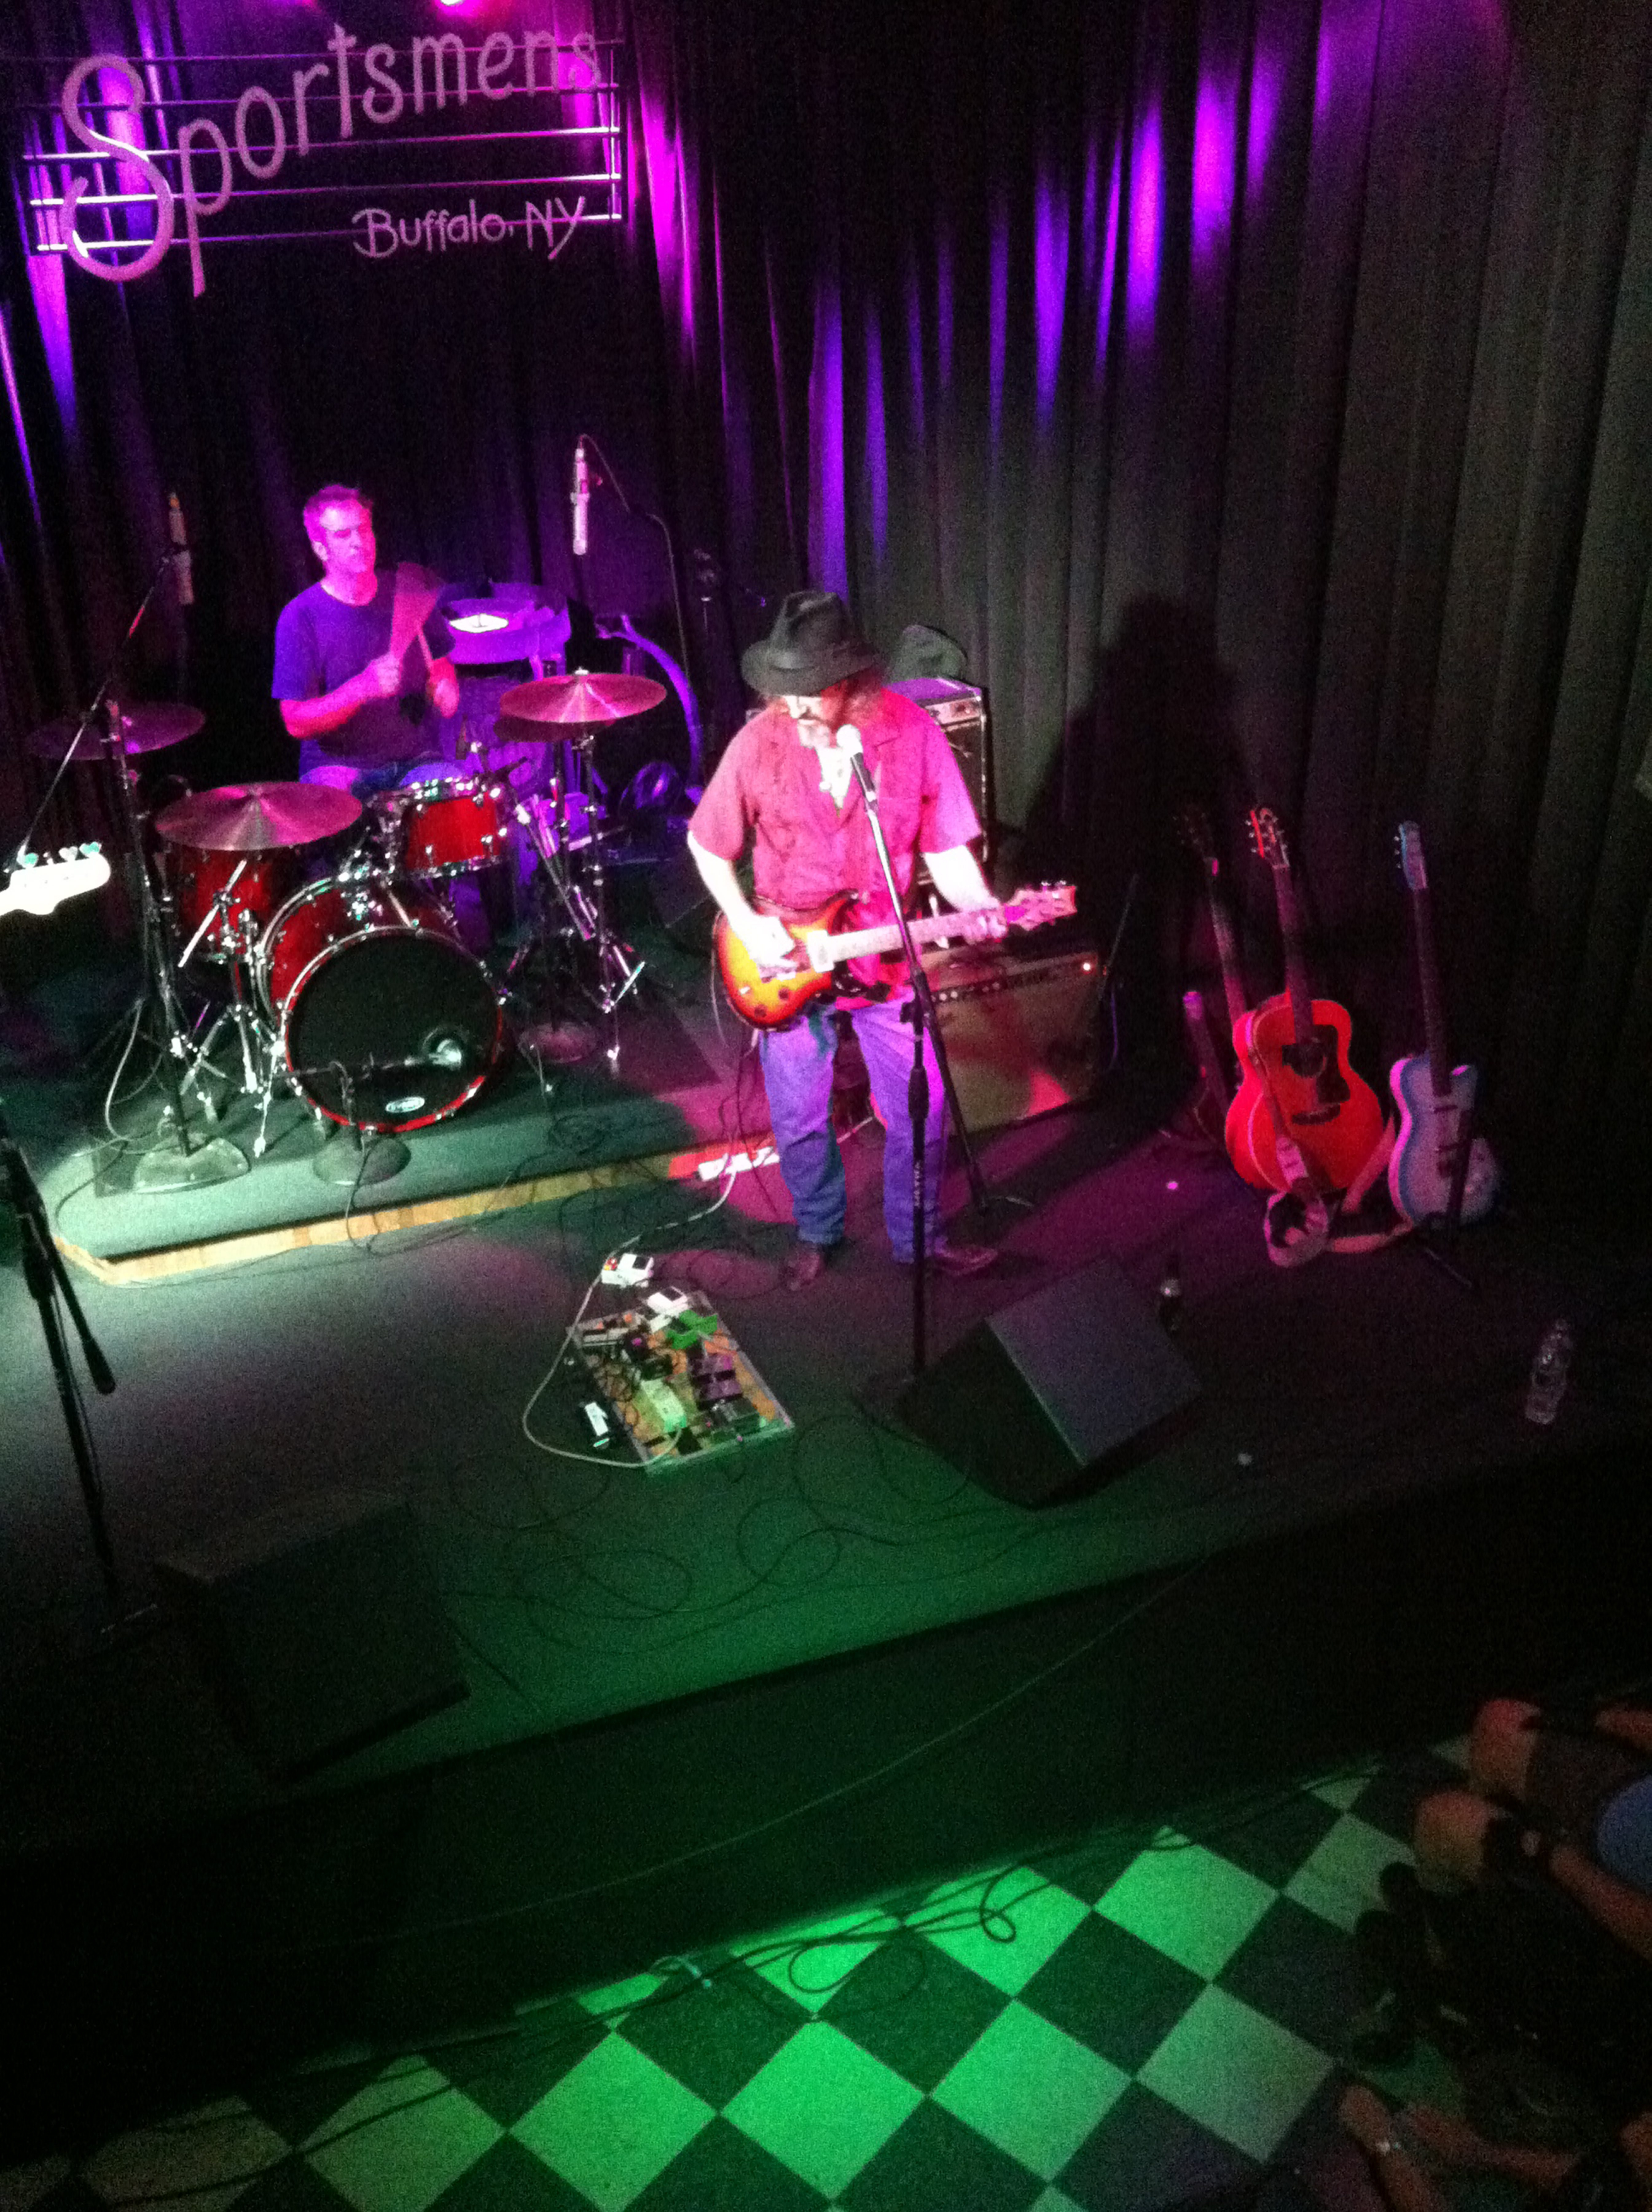 James McMurtry plays to a sold-out Sportsmen's Tavern on Tuesday.